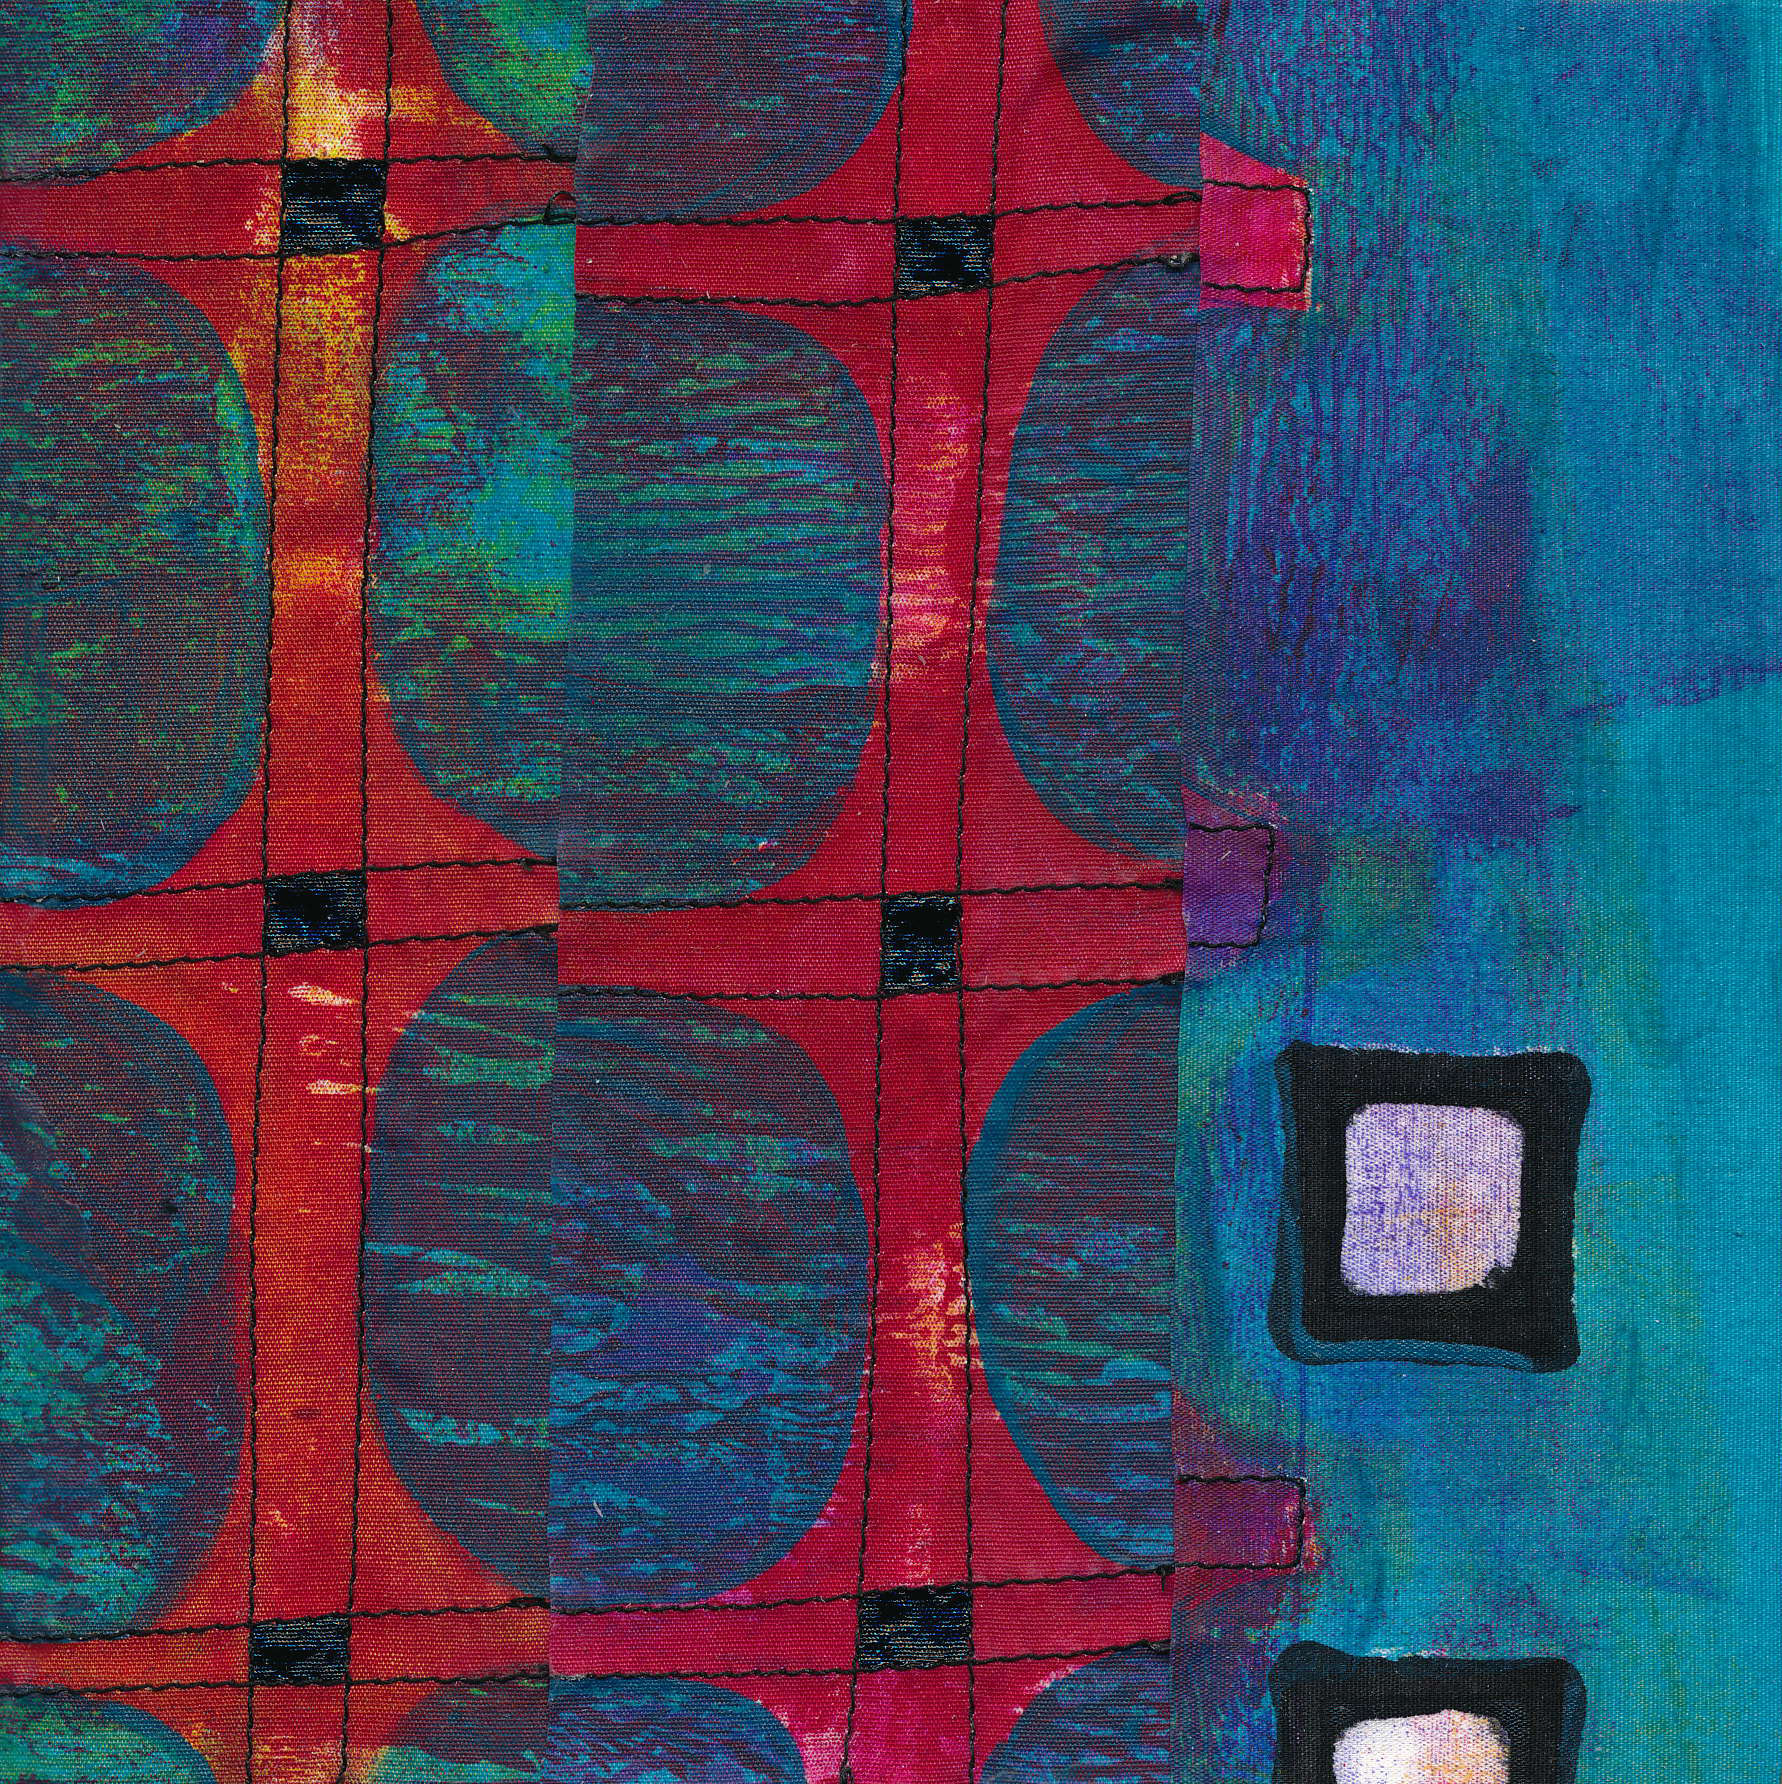 Jeanne Williamson,  Fragments from Ice on Fences #3 , mixed media on board, 6x6